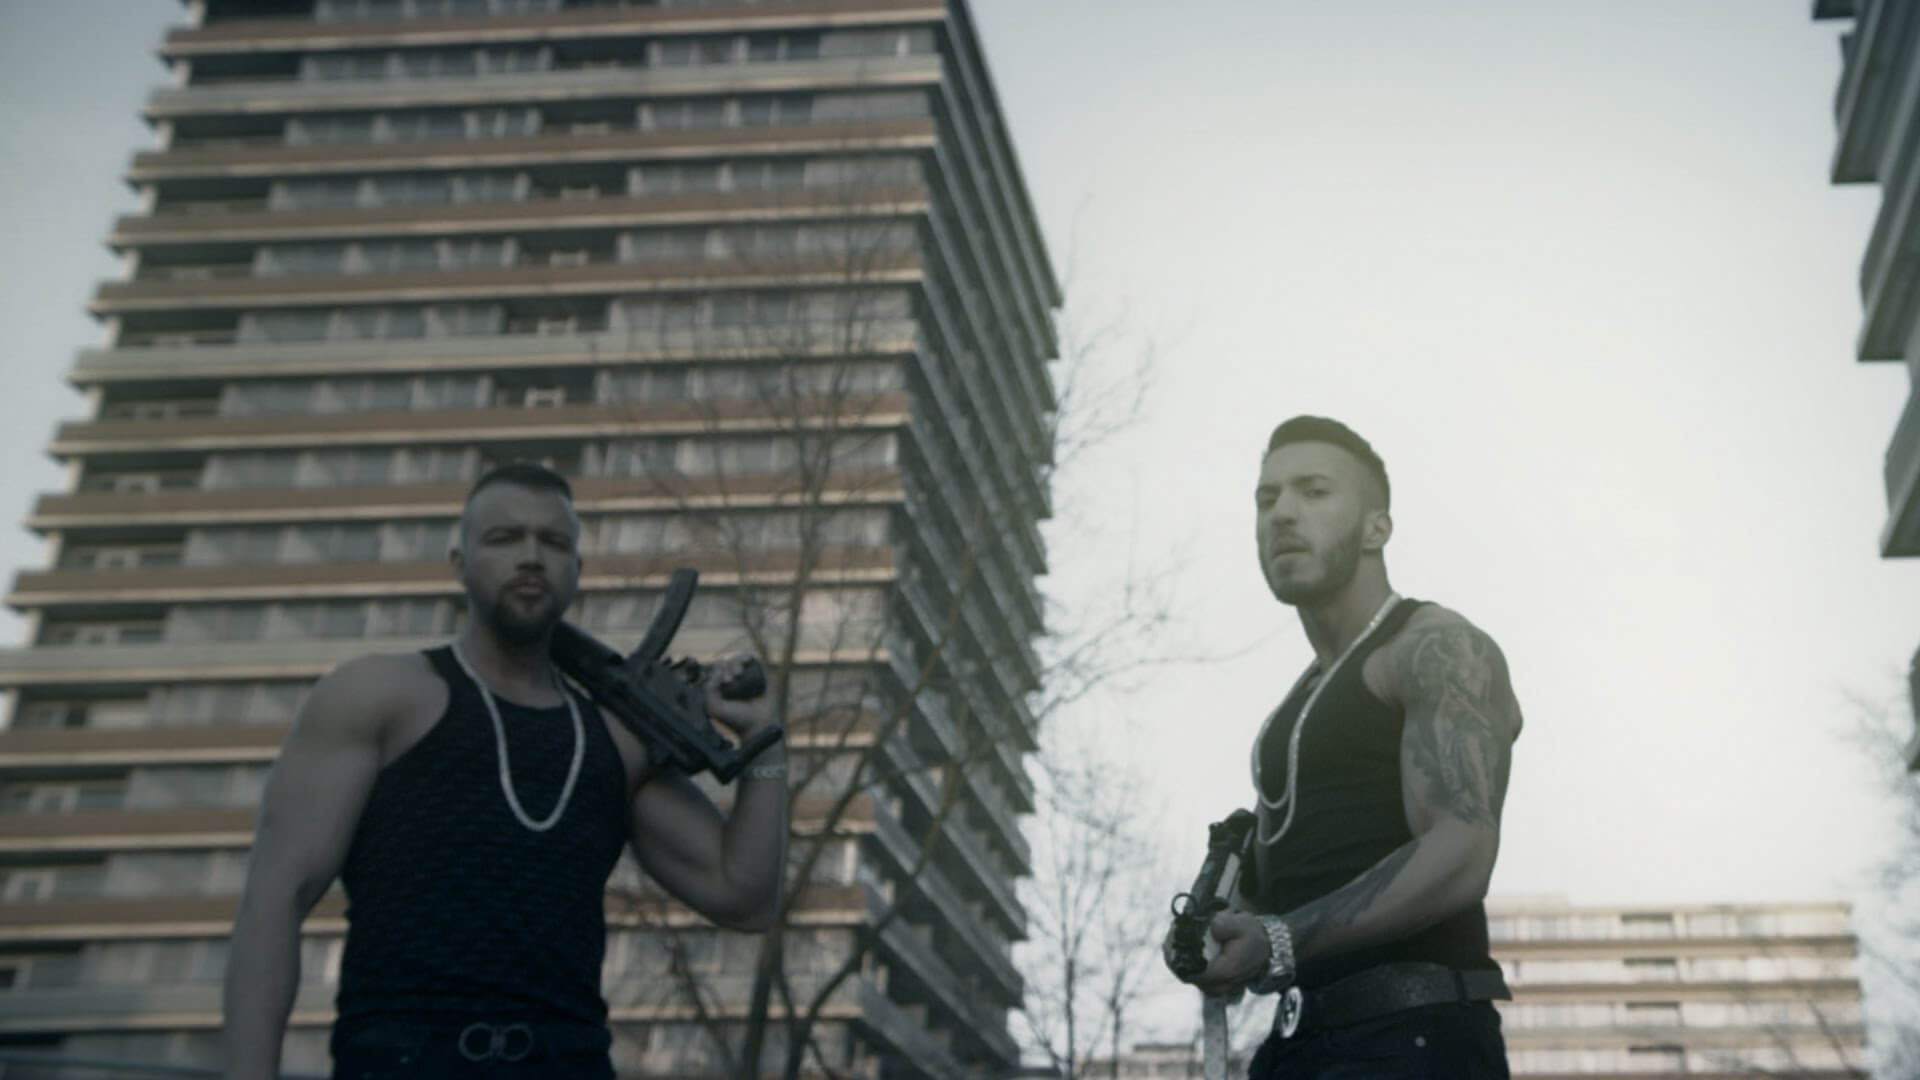 "Musikvideo: Seyed feat. Kollegah - MP5 aus dem Album ""Engel mit der AK"" 1"